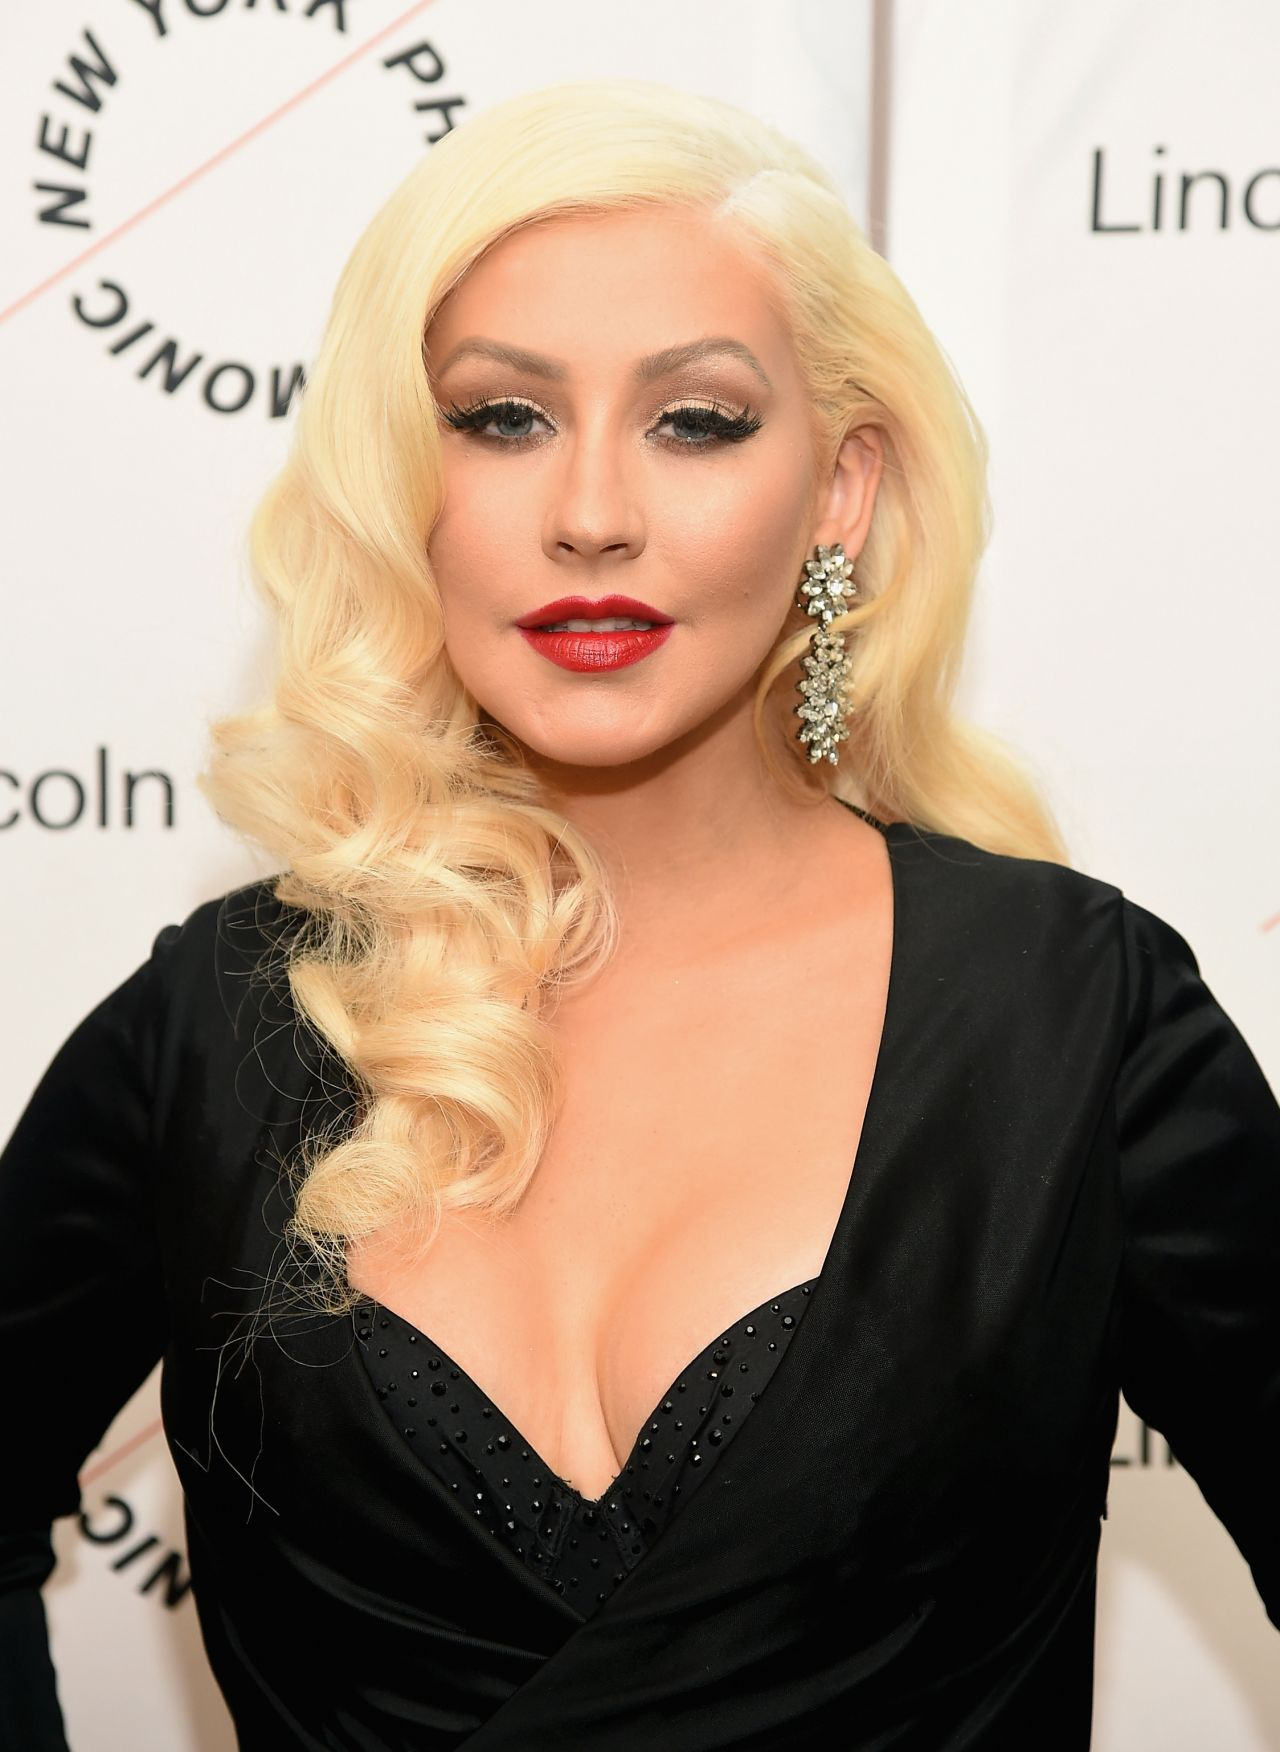 christina-aguilera-sinatra-voice-for-a-century-event-in-new-york-12-3-2015_1